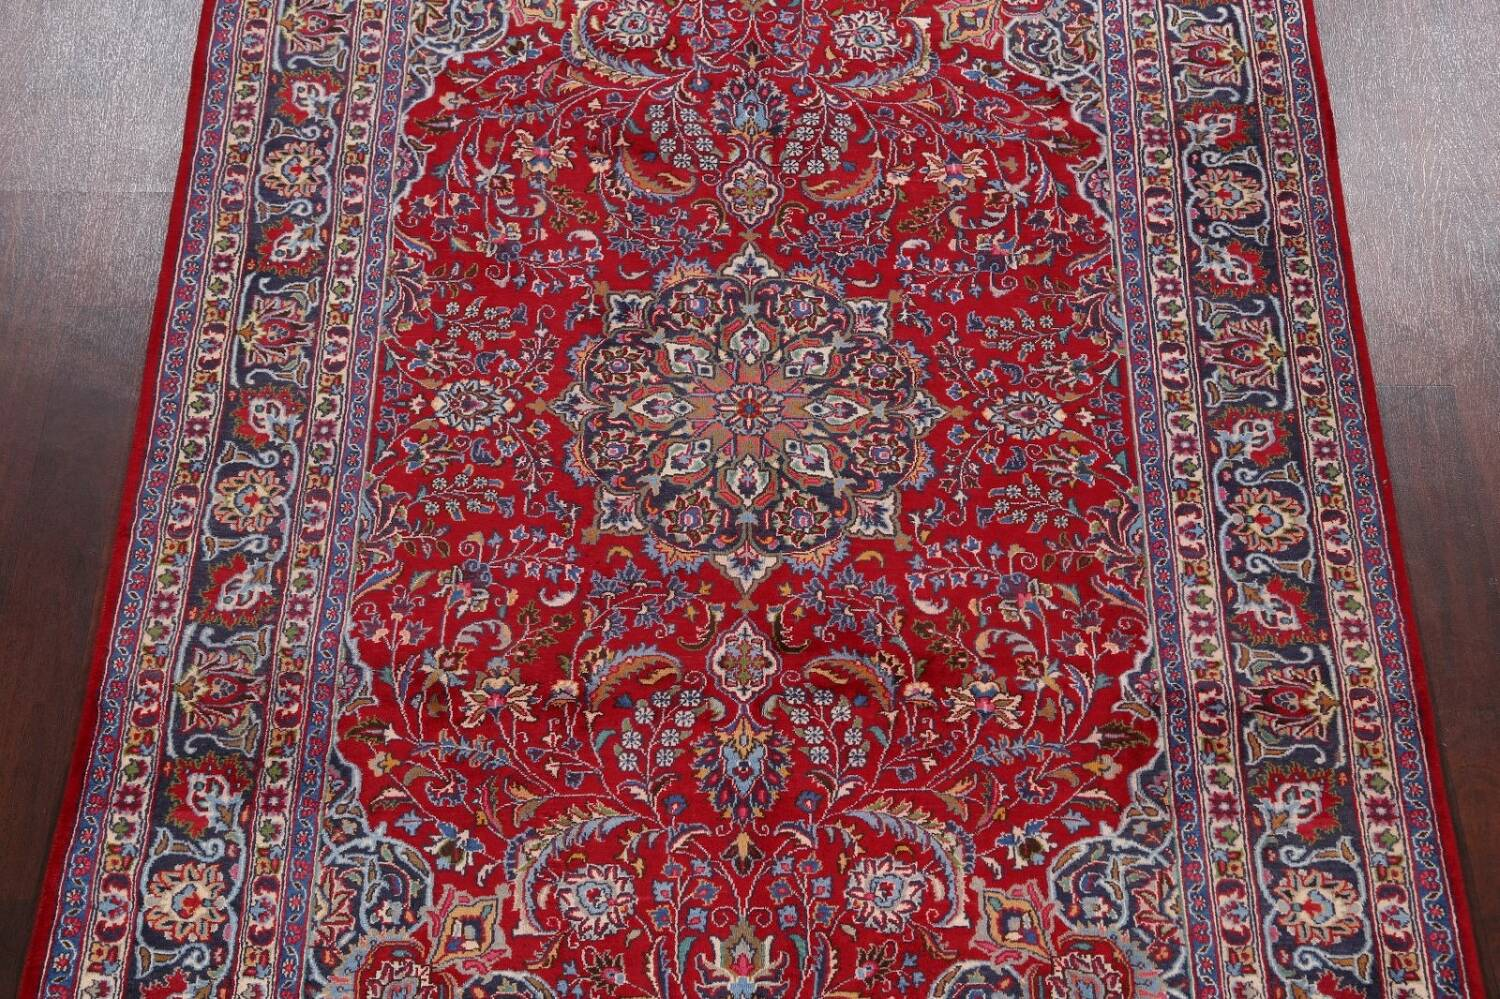 Floral Mashad Persian Red Area Rug 7x10 image 3